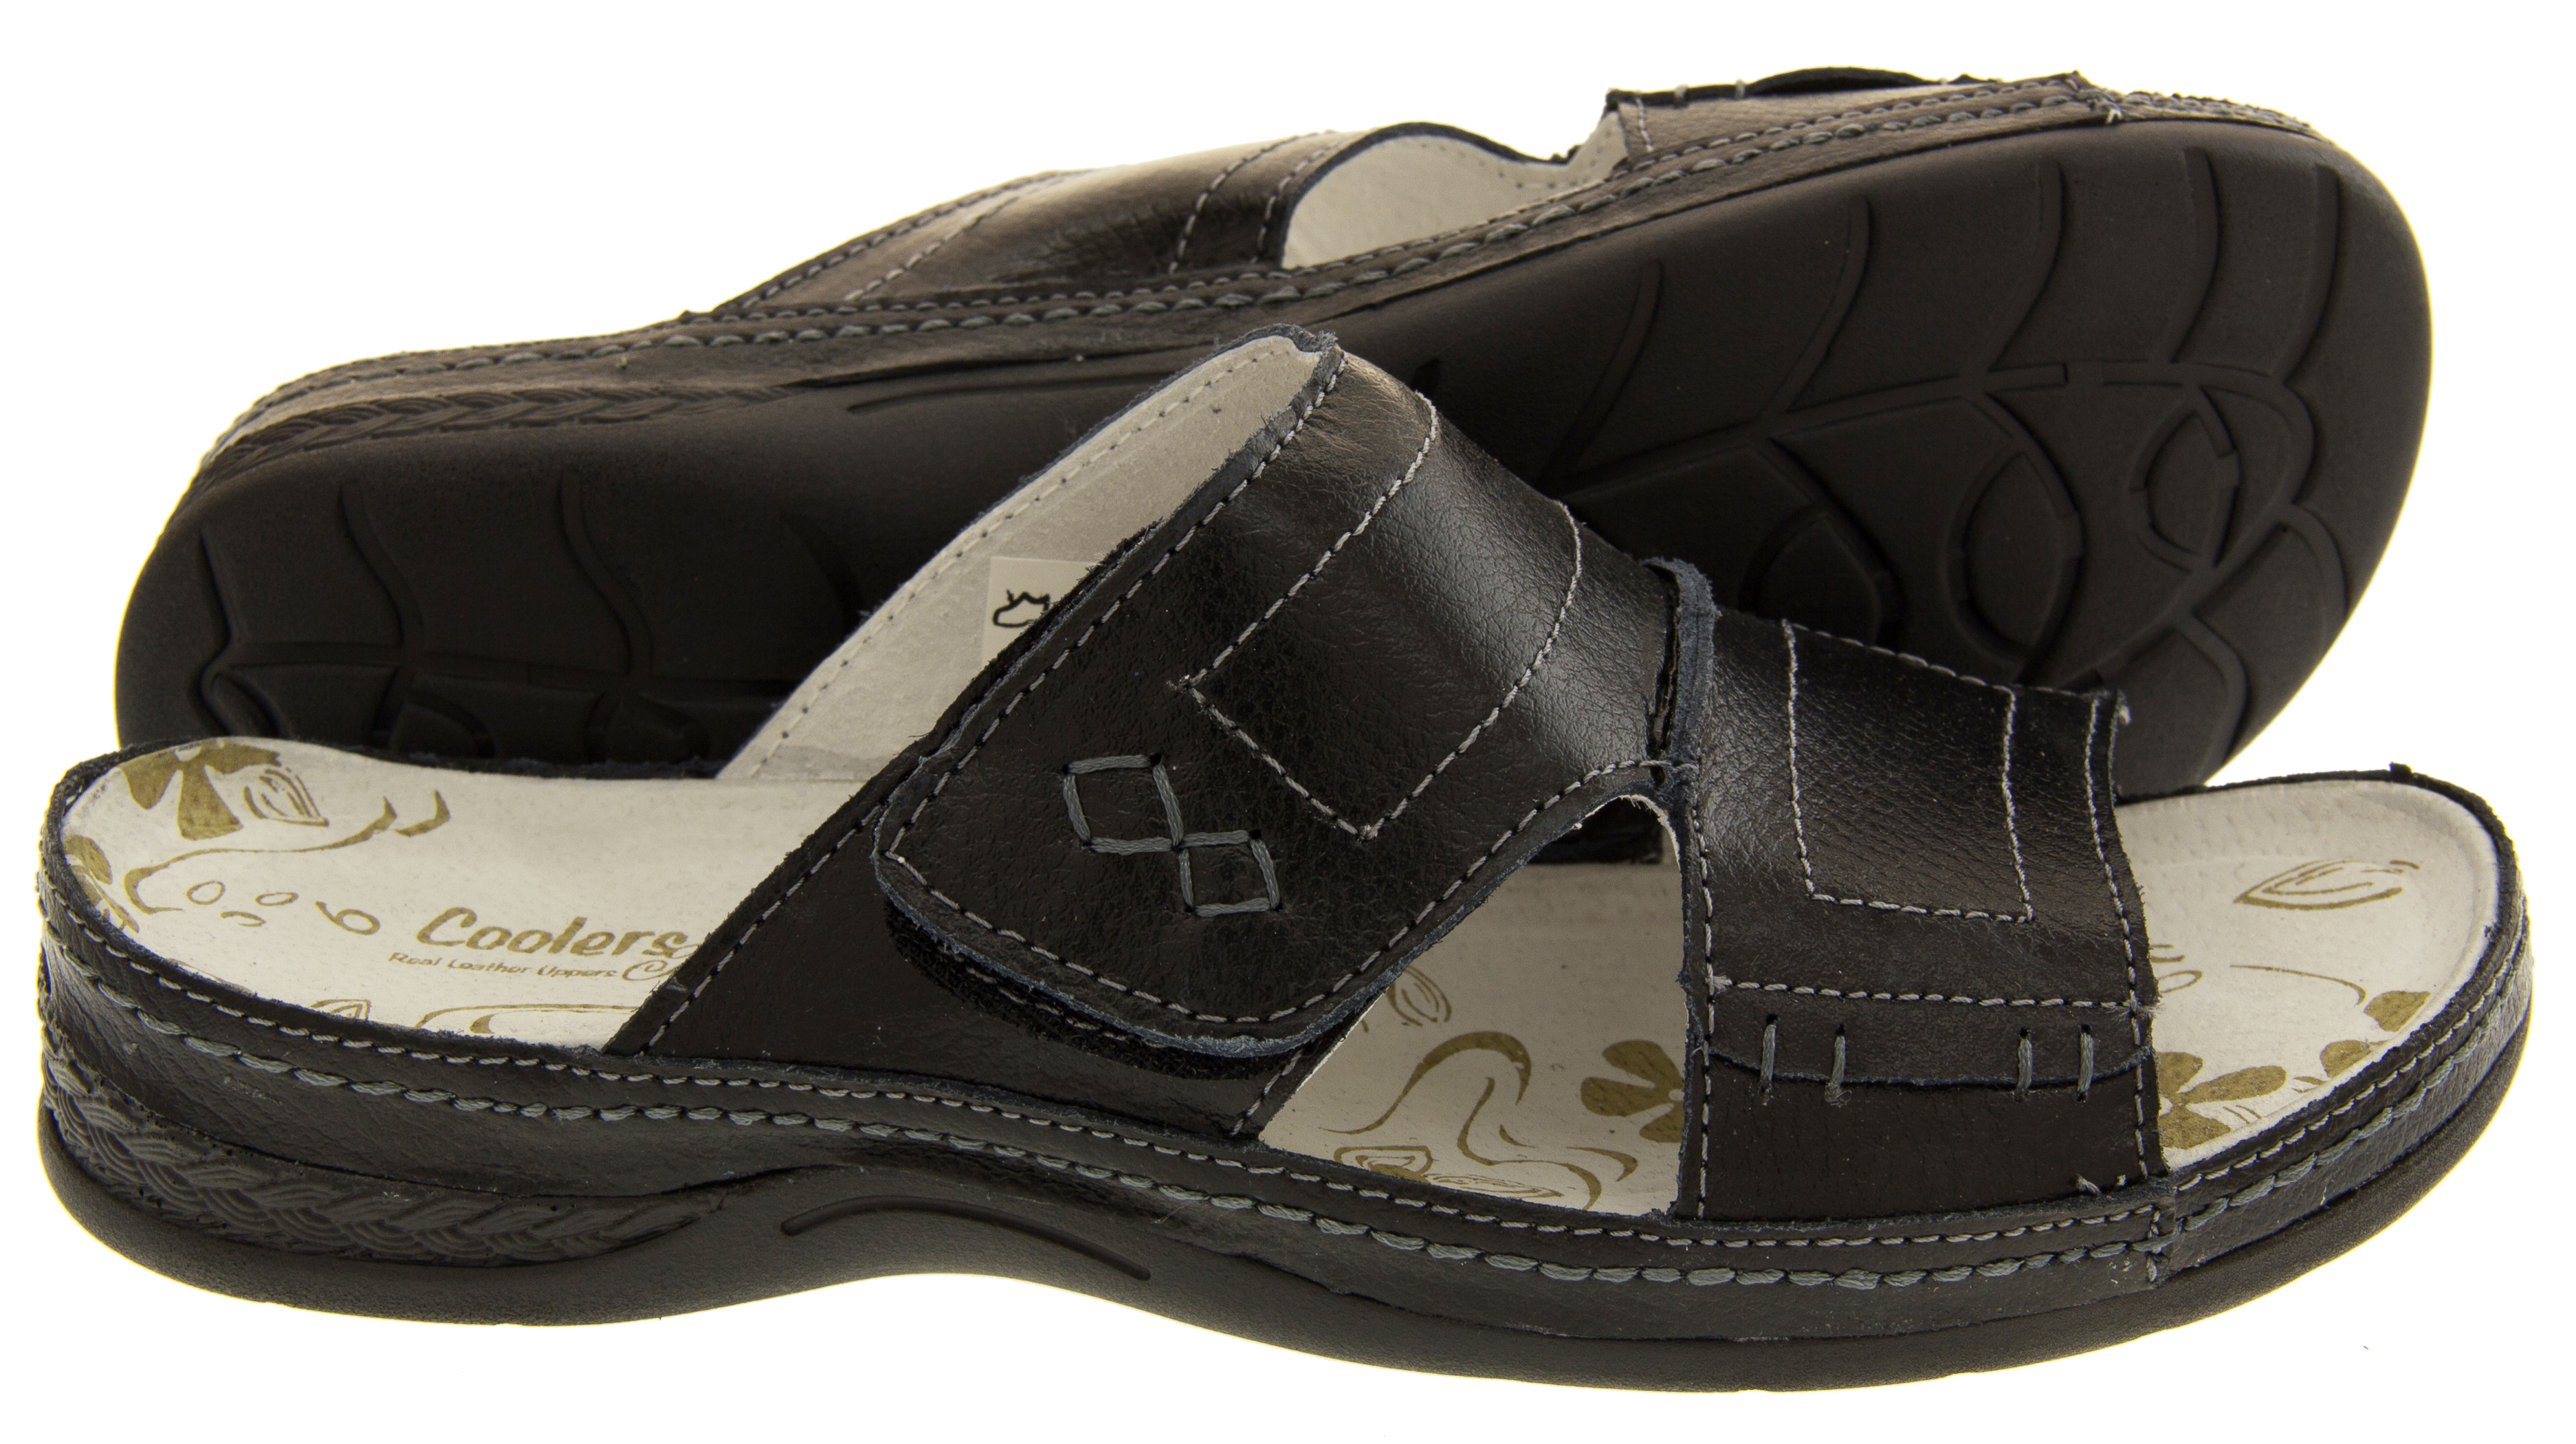 Innovative Stylish U0026 Comfortable Top Quality Shoes From Shoes By Mail